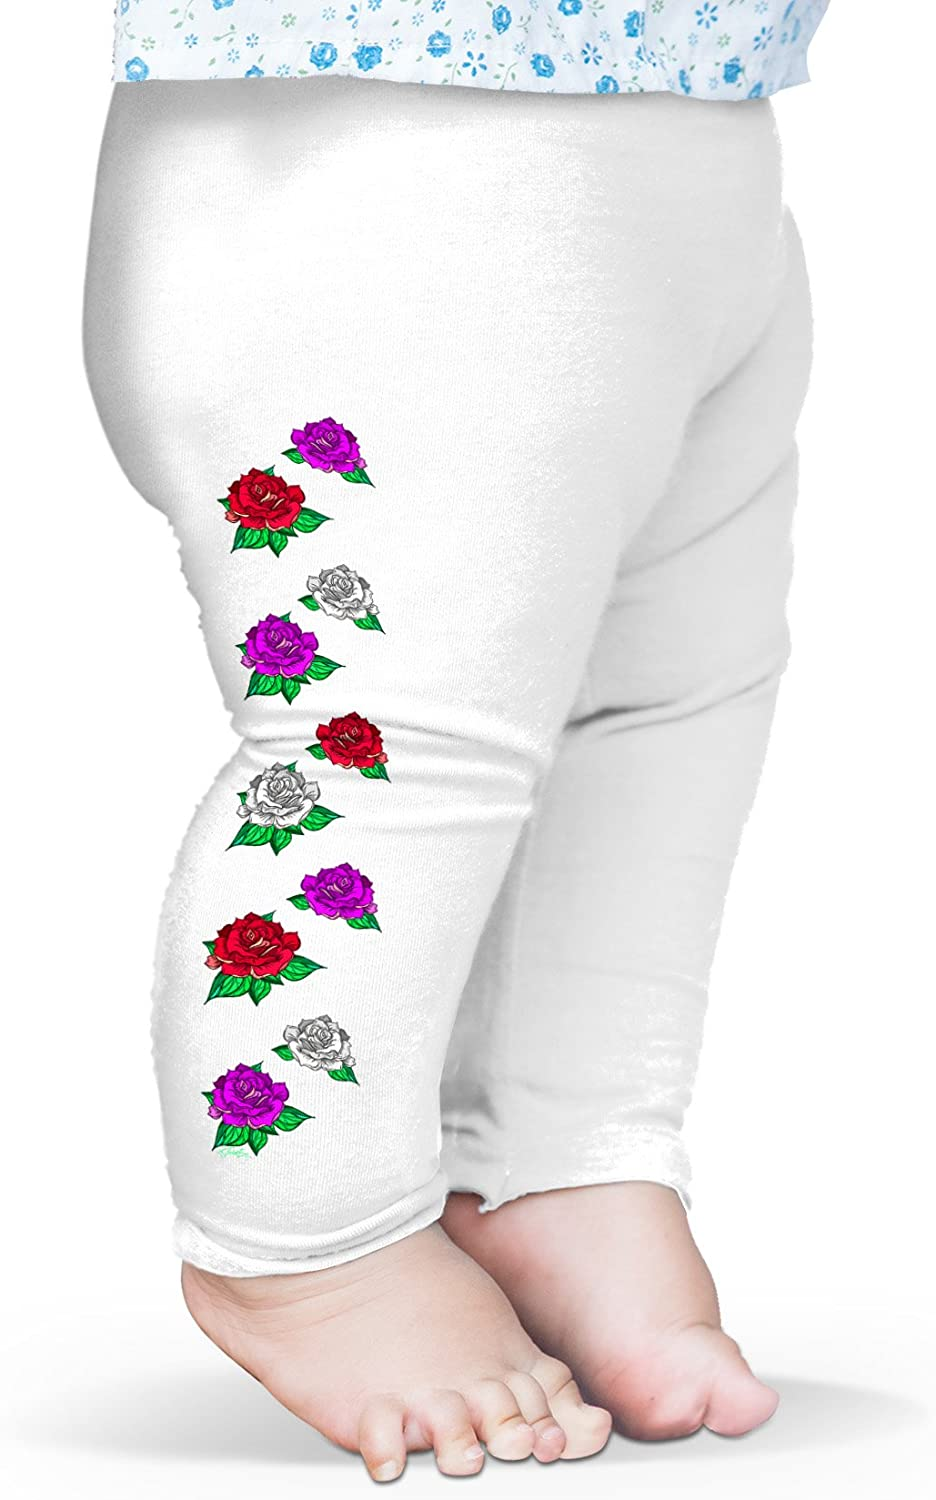 Twisted Envy Baby Coloured Roses Pattern Leggings Trousers 12-18 Months White